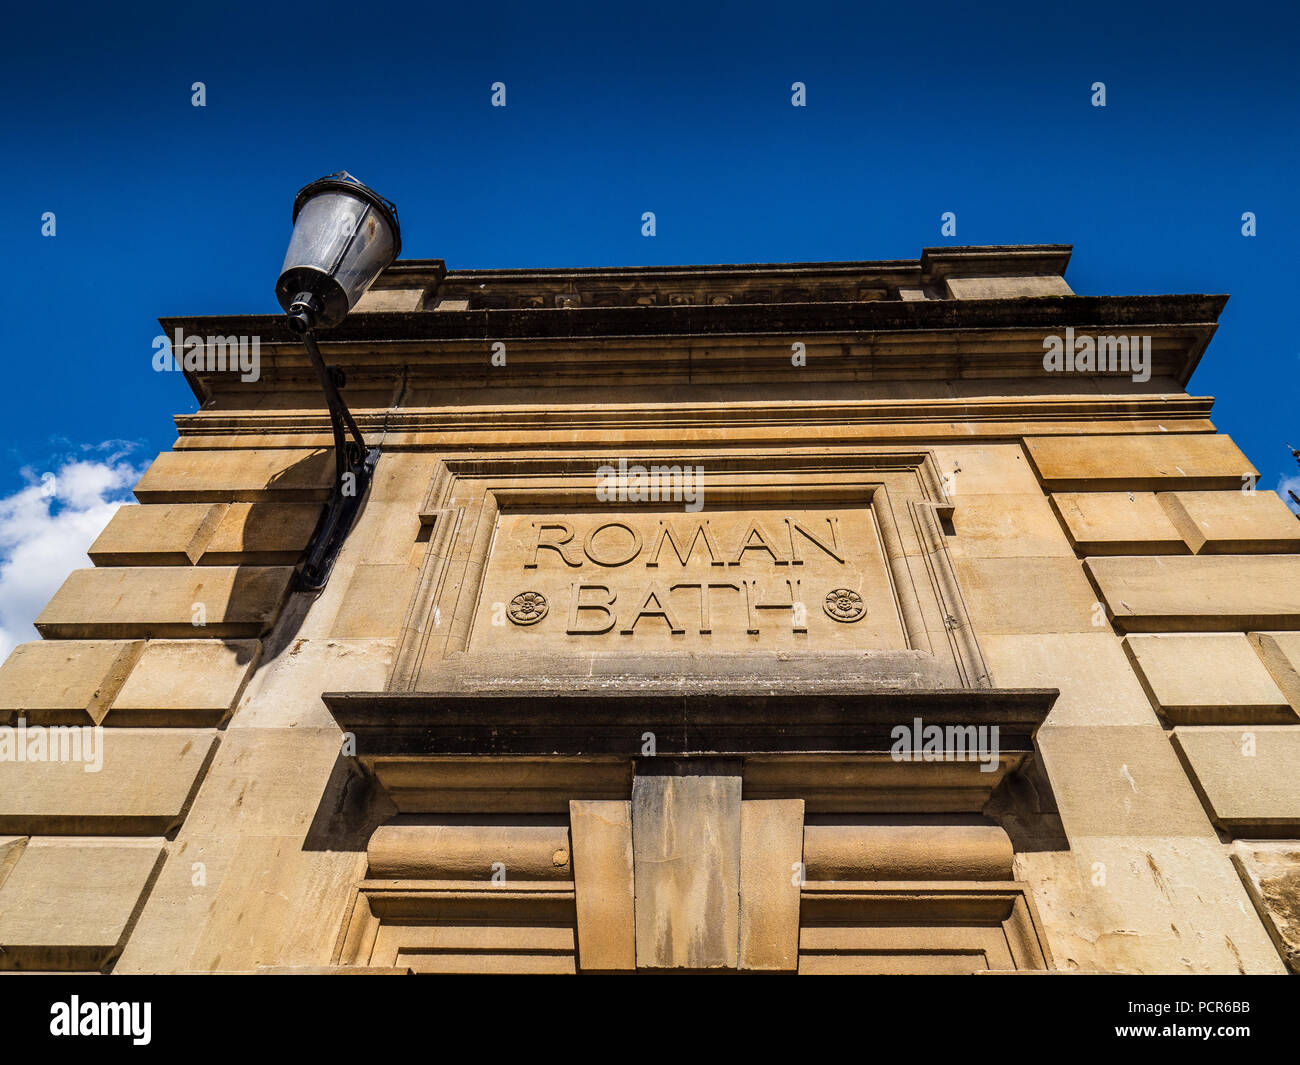 Roman Bath - Sign outside the Roman Baths in the City of Bath, Somerset, UK - Stock Image